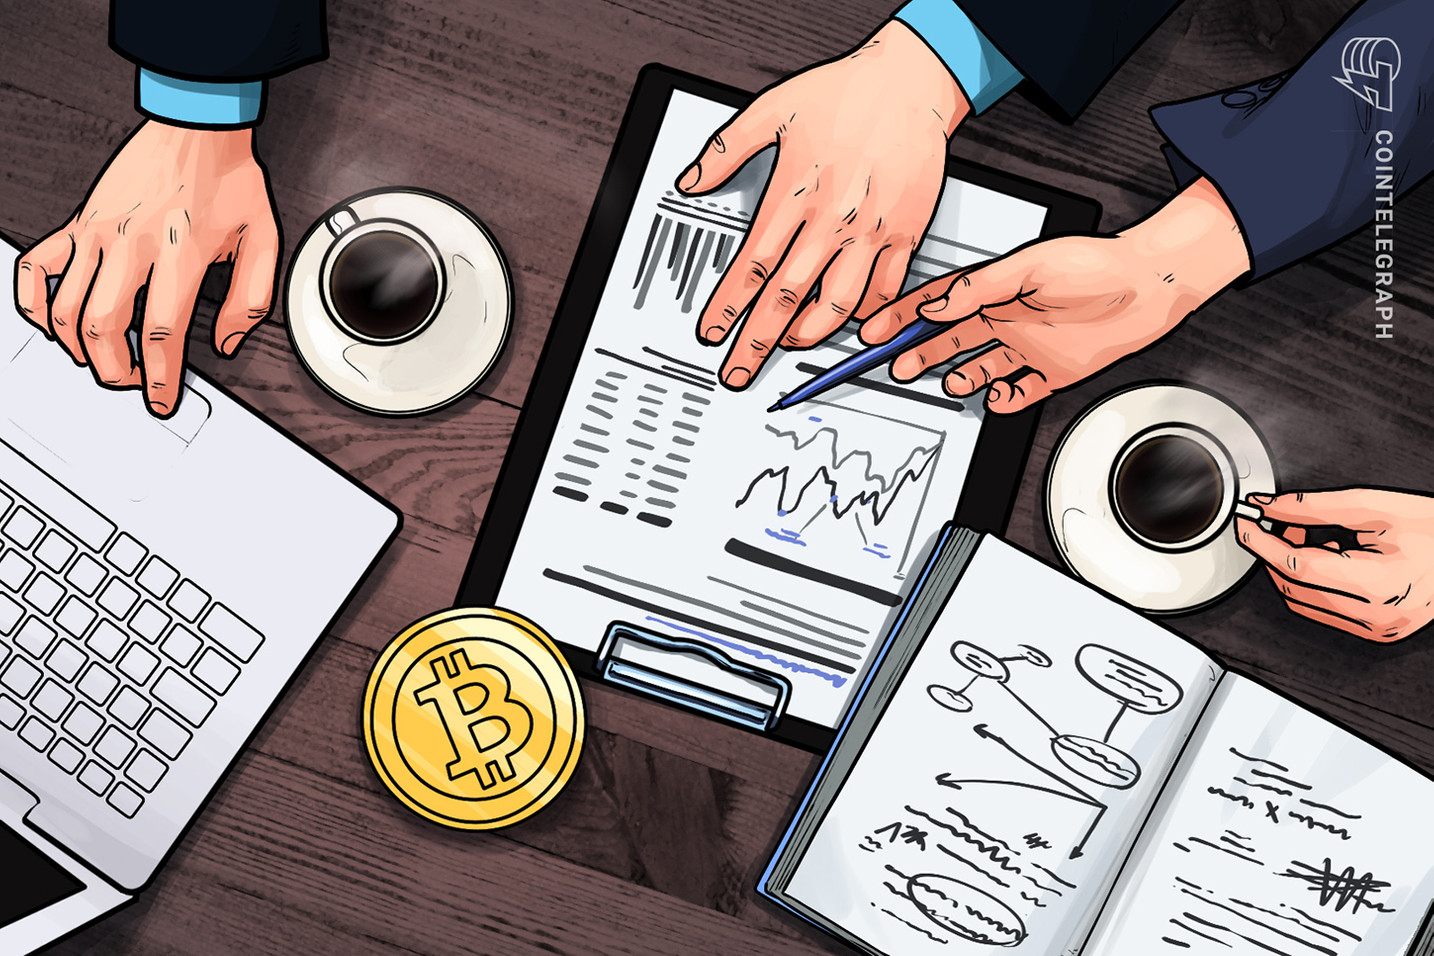 Exchange inflows, on-chain data show retail traders fueled Bitcoin's sell-off